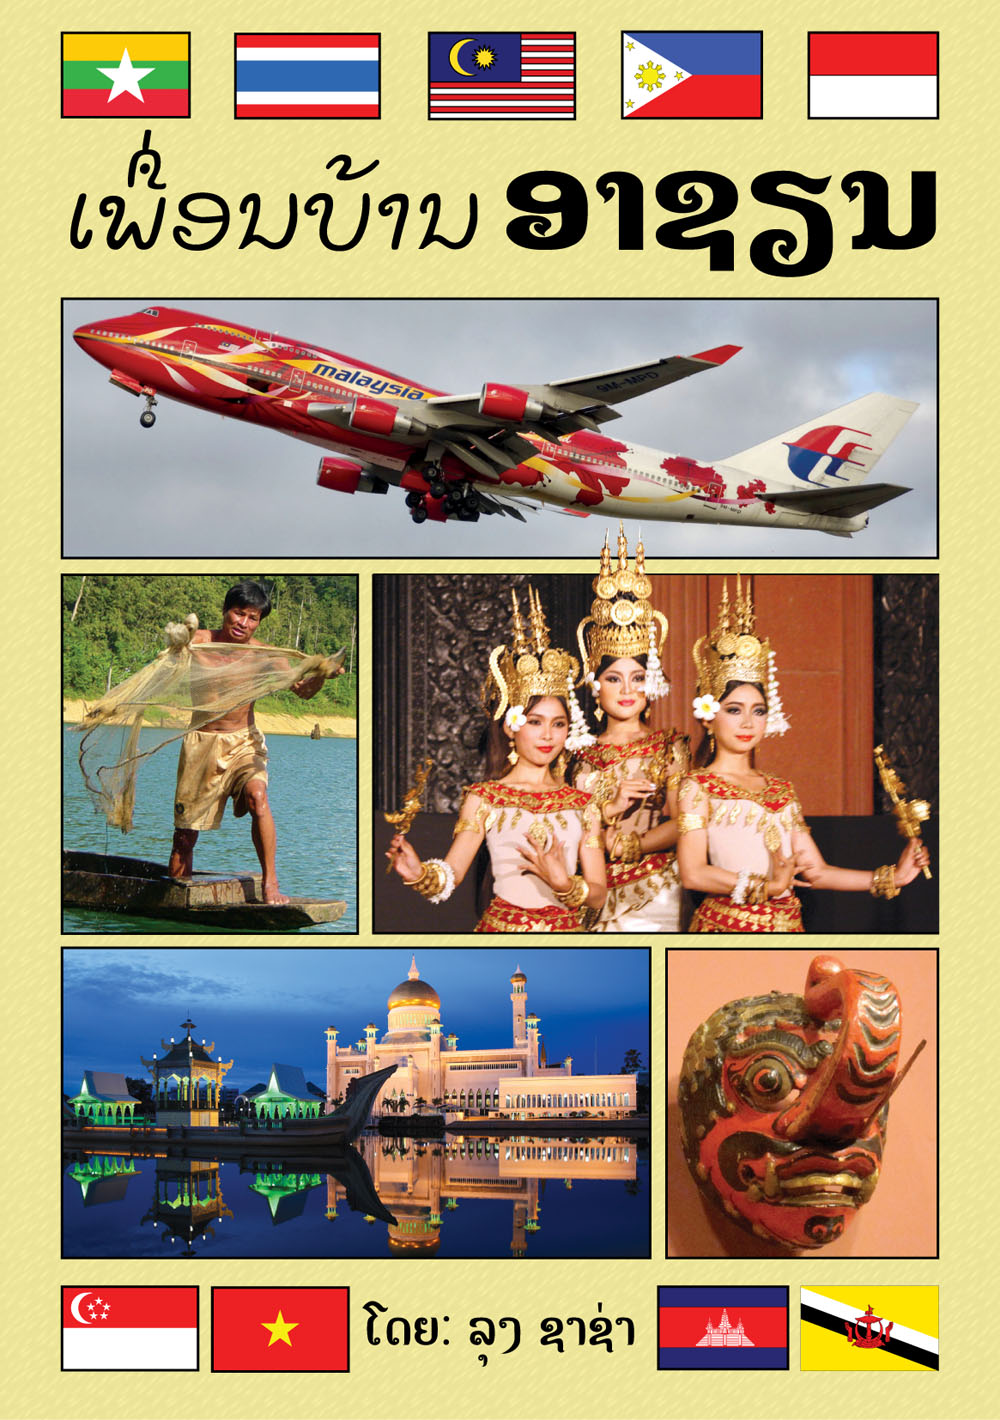 Our ASEAN Neighbors large book cover, published in Lao language